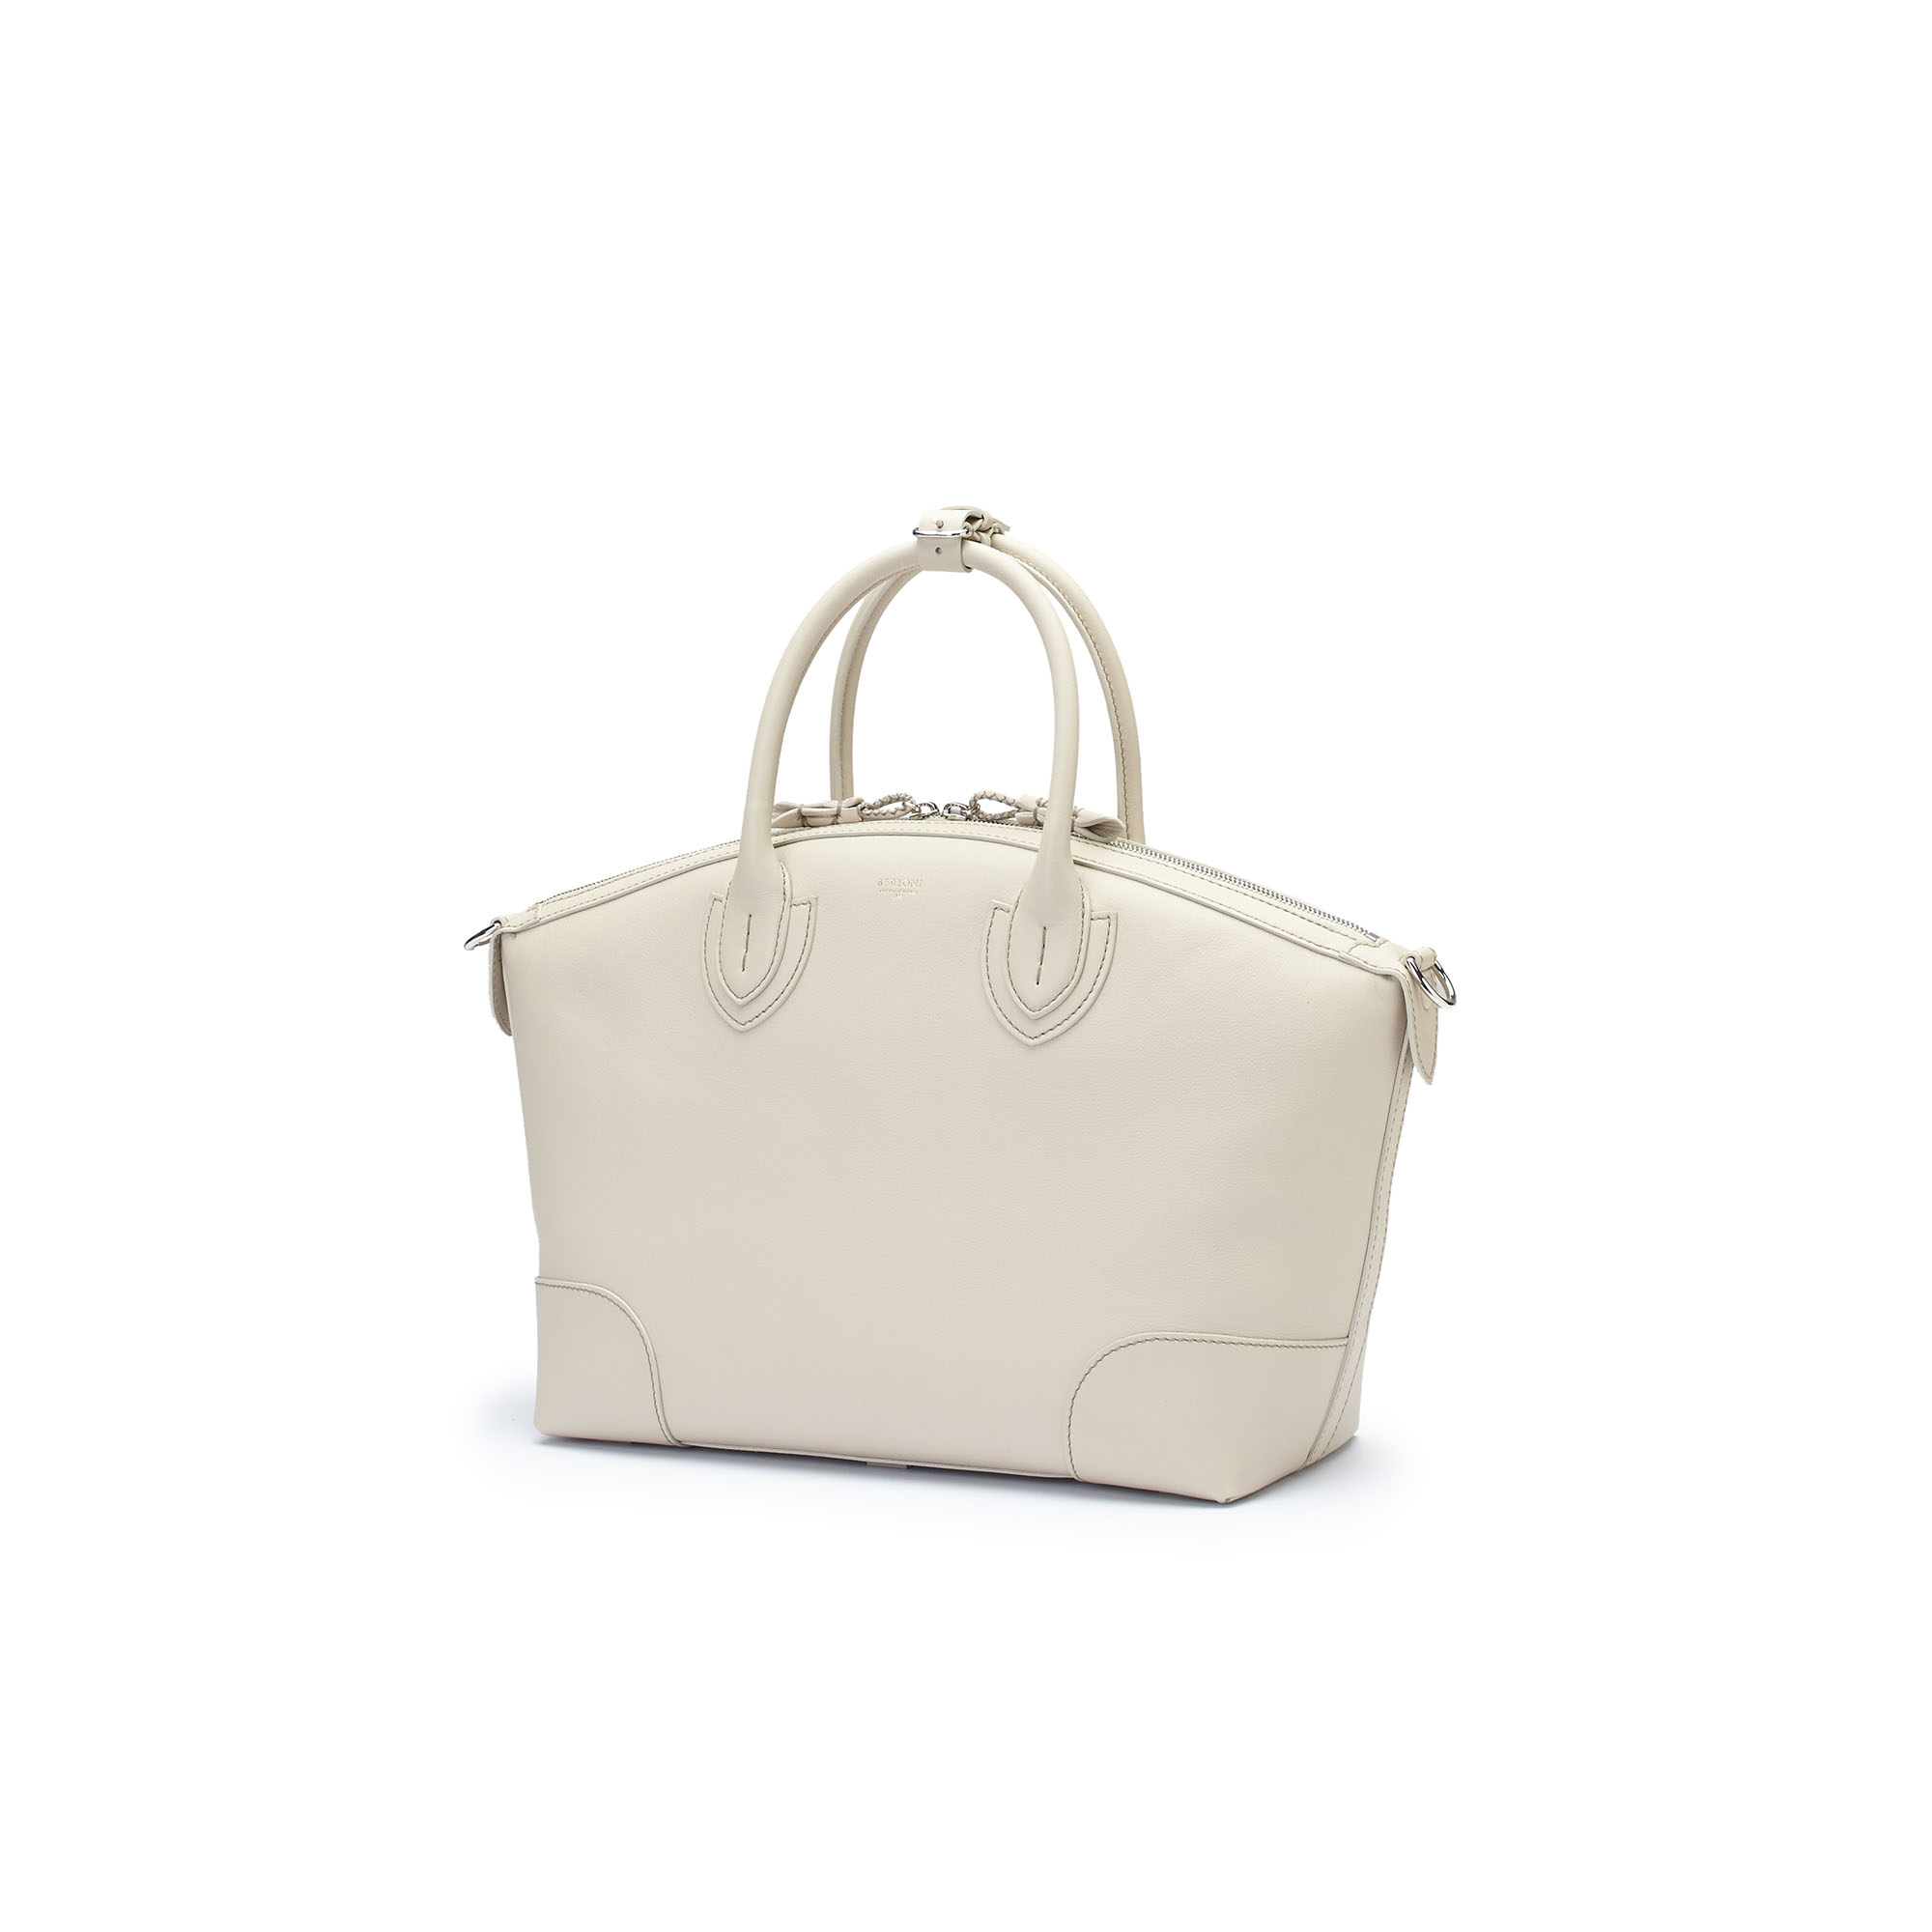 The ivory soft calf Anija bag by Bertoni 1949 02